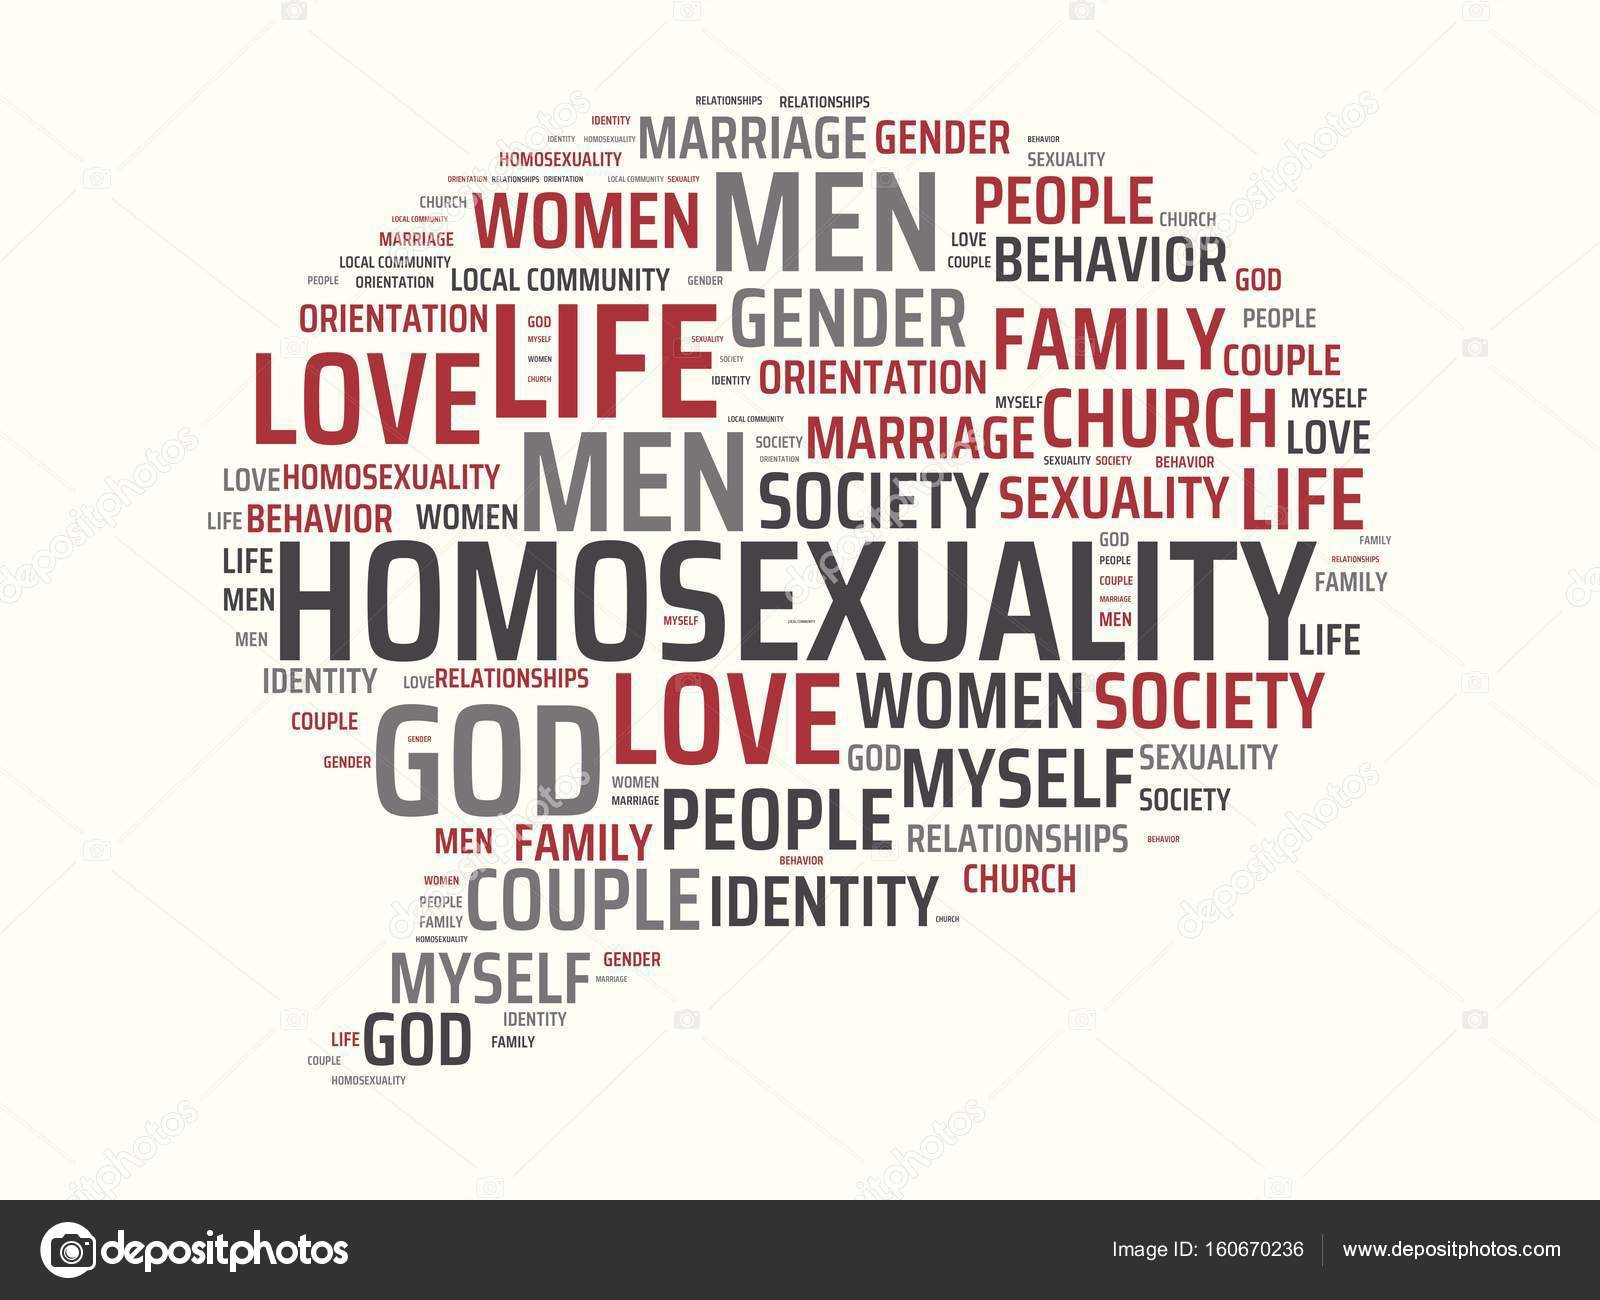 Words associated with sexuality